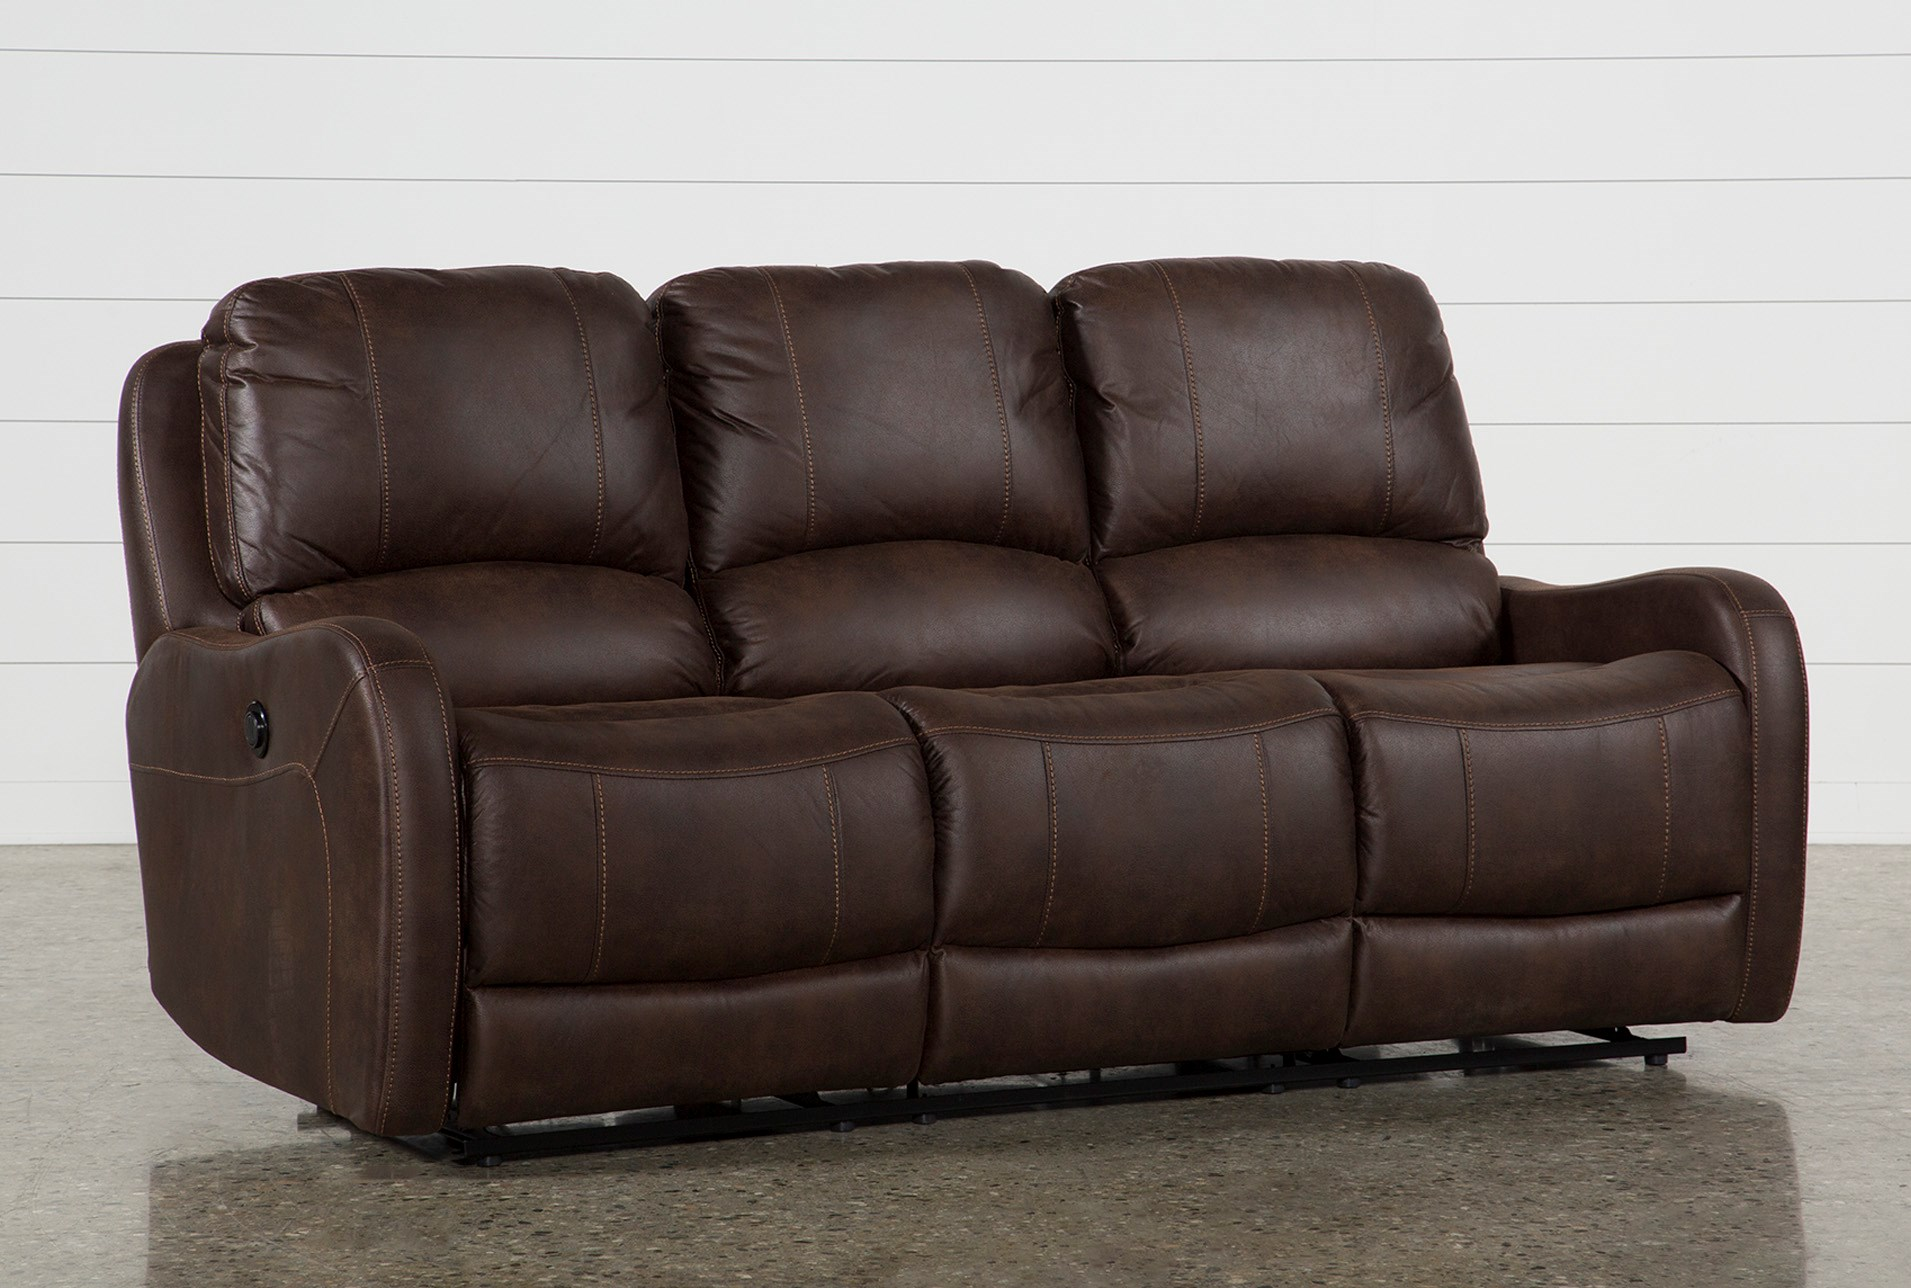 Davor brown power reclining sofa qty 1 has been successfully added to your cart